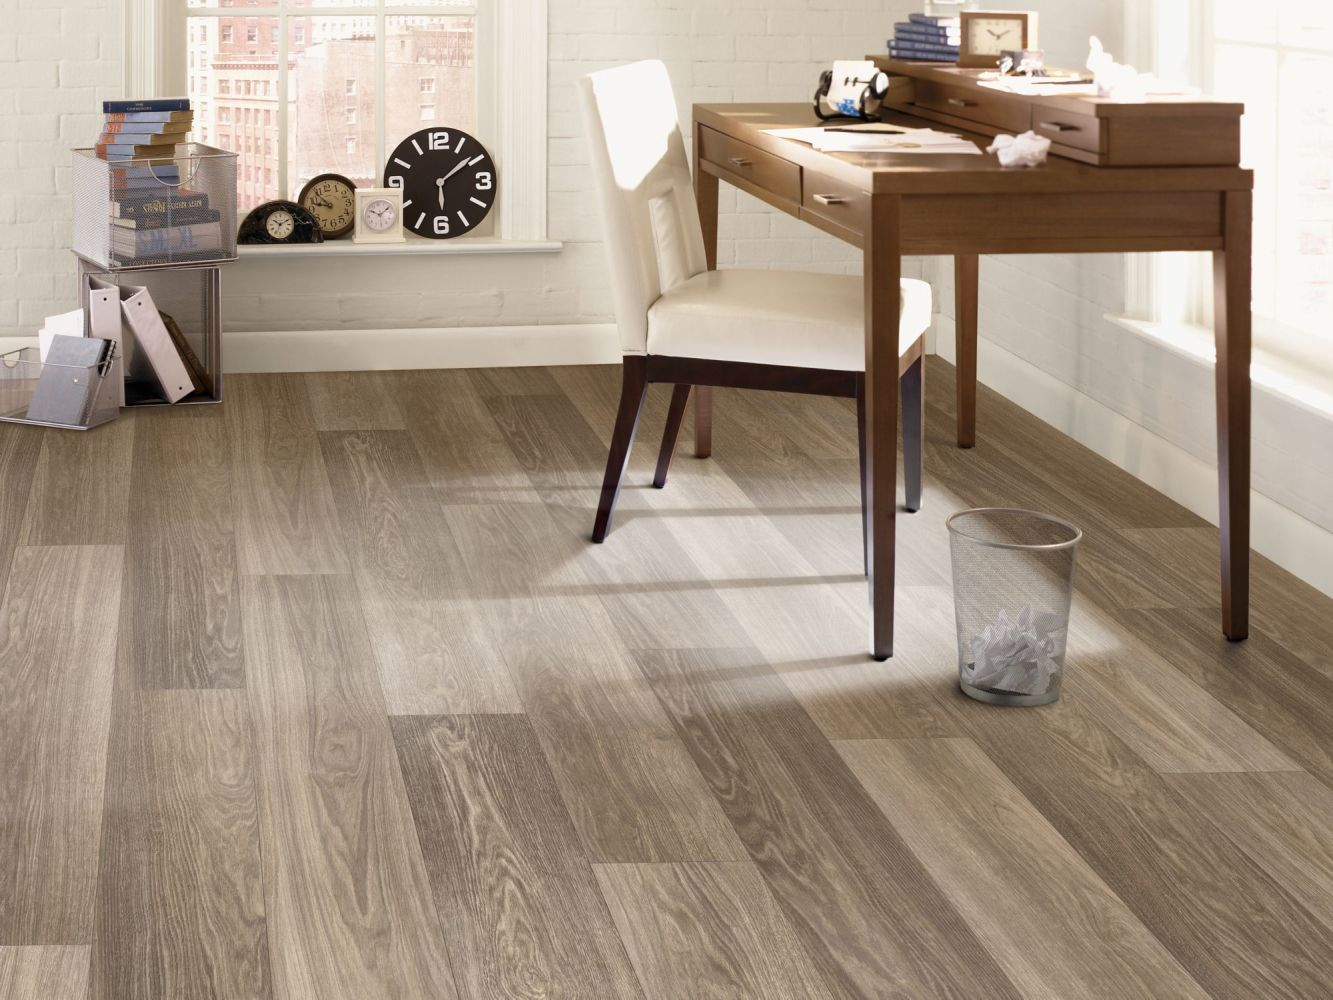 Shaw Floors Resilient Residential Great Basin II Sagewood 00732_0874V